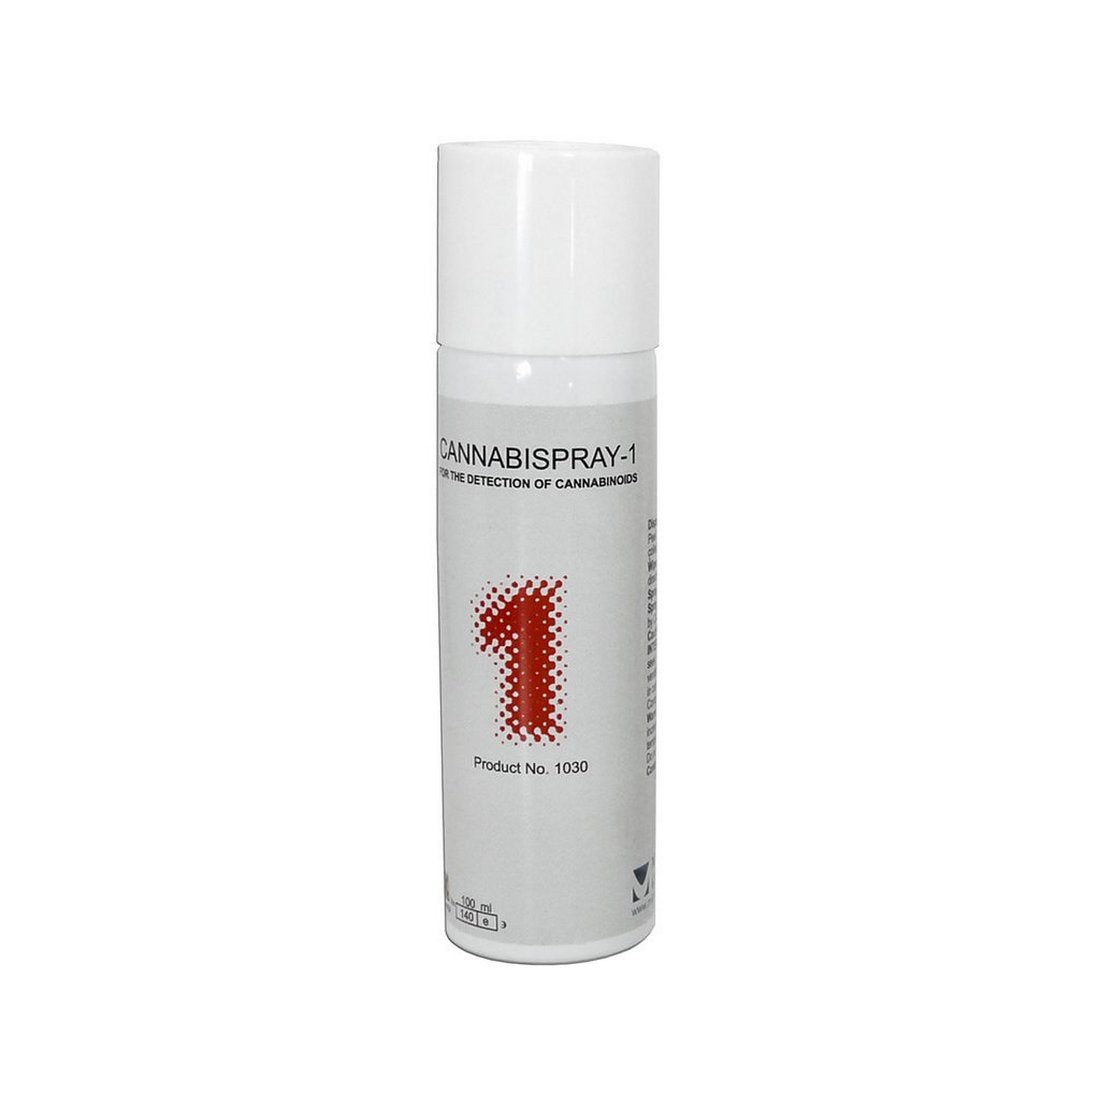 Mistral 01030 Cannabispray 1 (Regular) Drug Detection Aerosol